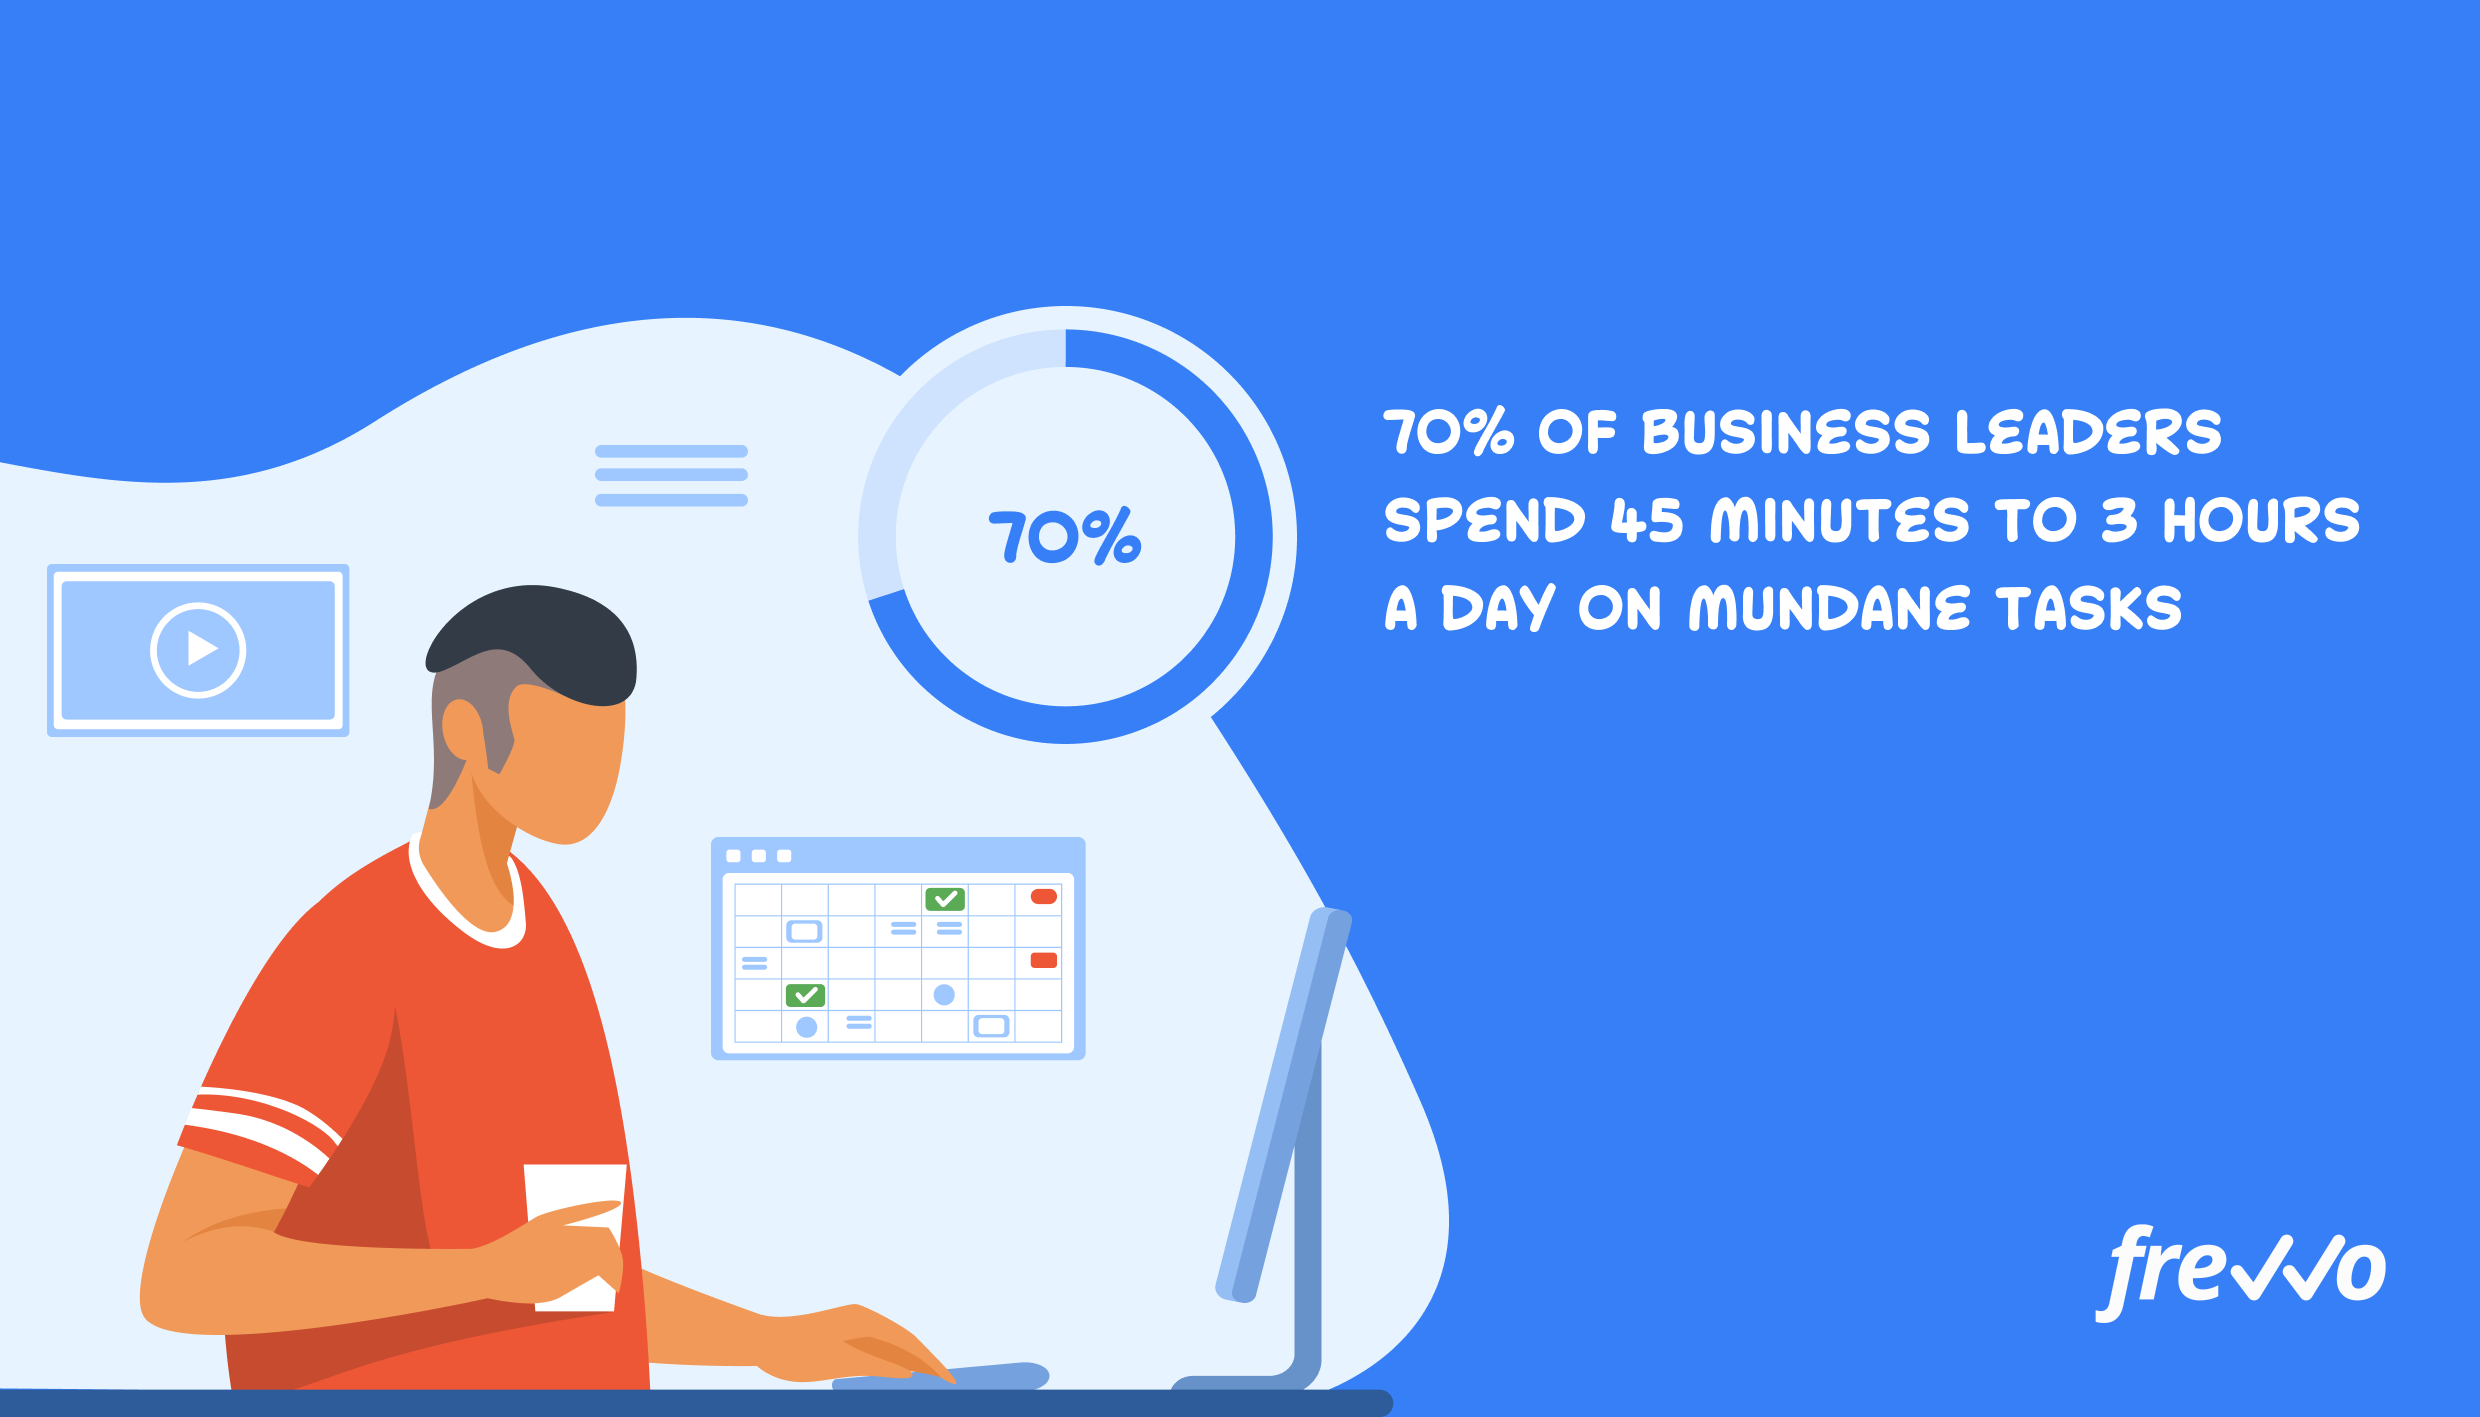 How much time business leaders spend on repetitive tasks